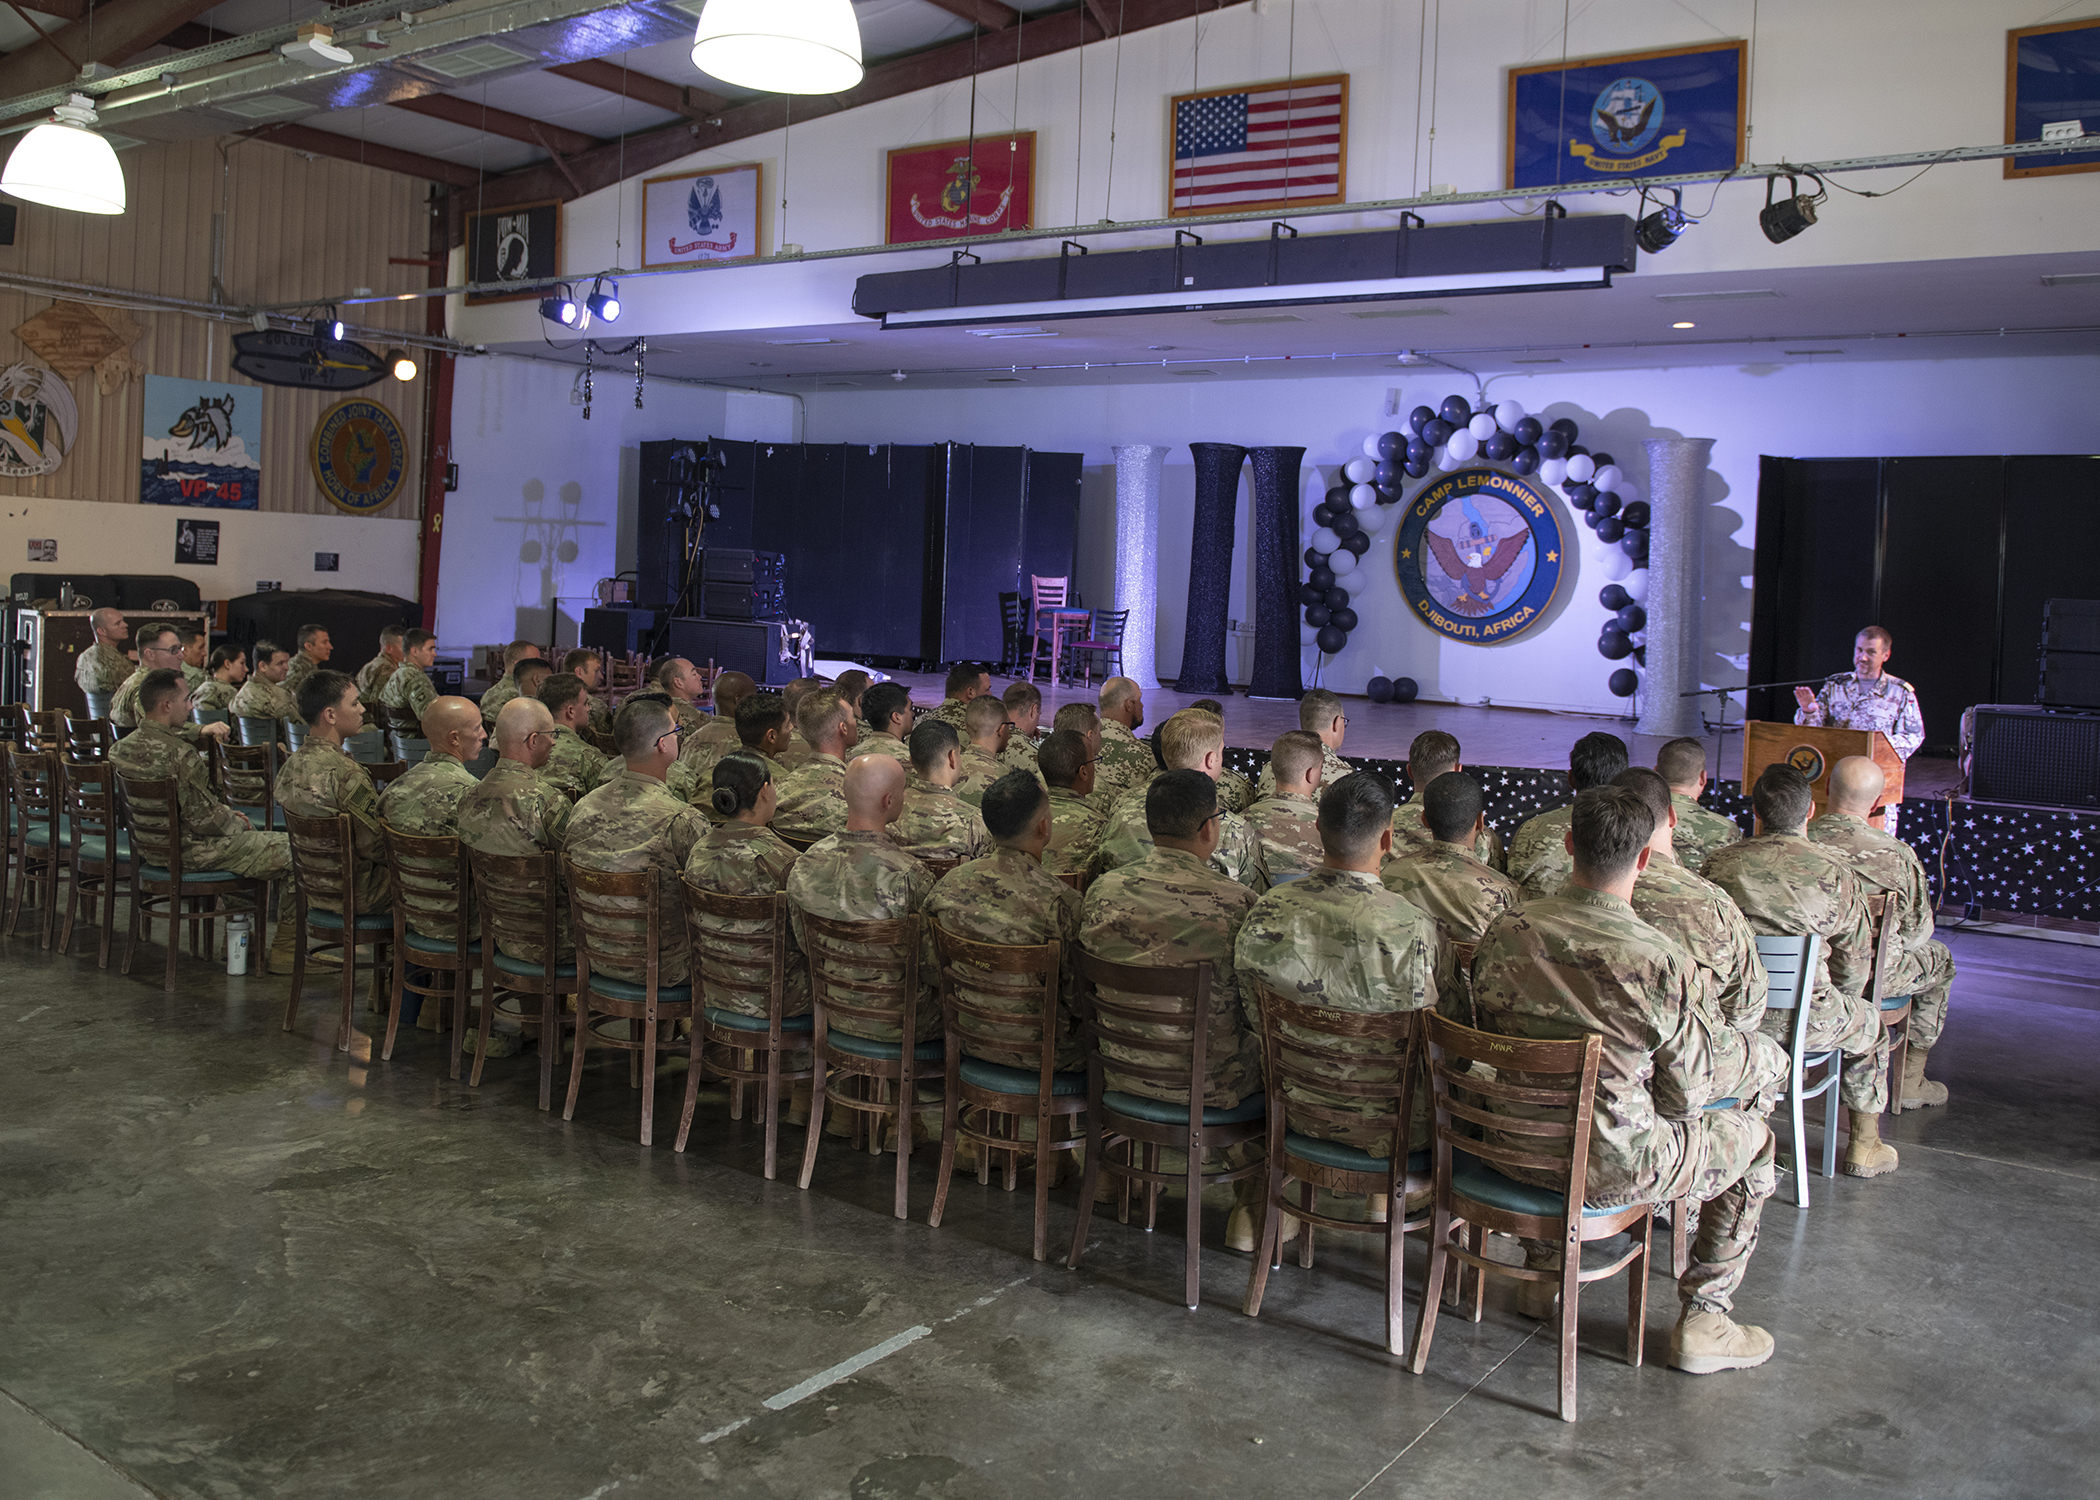 U.S. Army Soldier from 1-141 Infantry Regiment, Task Force Alamo, Texas National Guard, assigned to Combined Joint Task Force-Horn of Africa, and German Army and Navy service members gather for an awards presentation for the German Armed Forces Badge for military proficiency at the Camp Lemonnier, Djibouti, Jan. 22, 2019. Competing for the badge offered a unique opportunity to Soldiers and worked as an information exchange between the U.S. and Germany militaries. (U.S. Air Force photo by Tech. Sgt. Shawn Nickel)